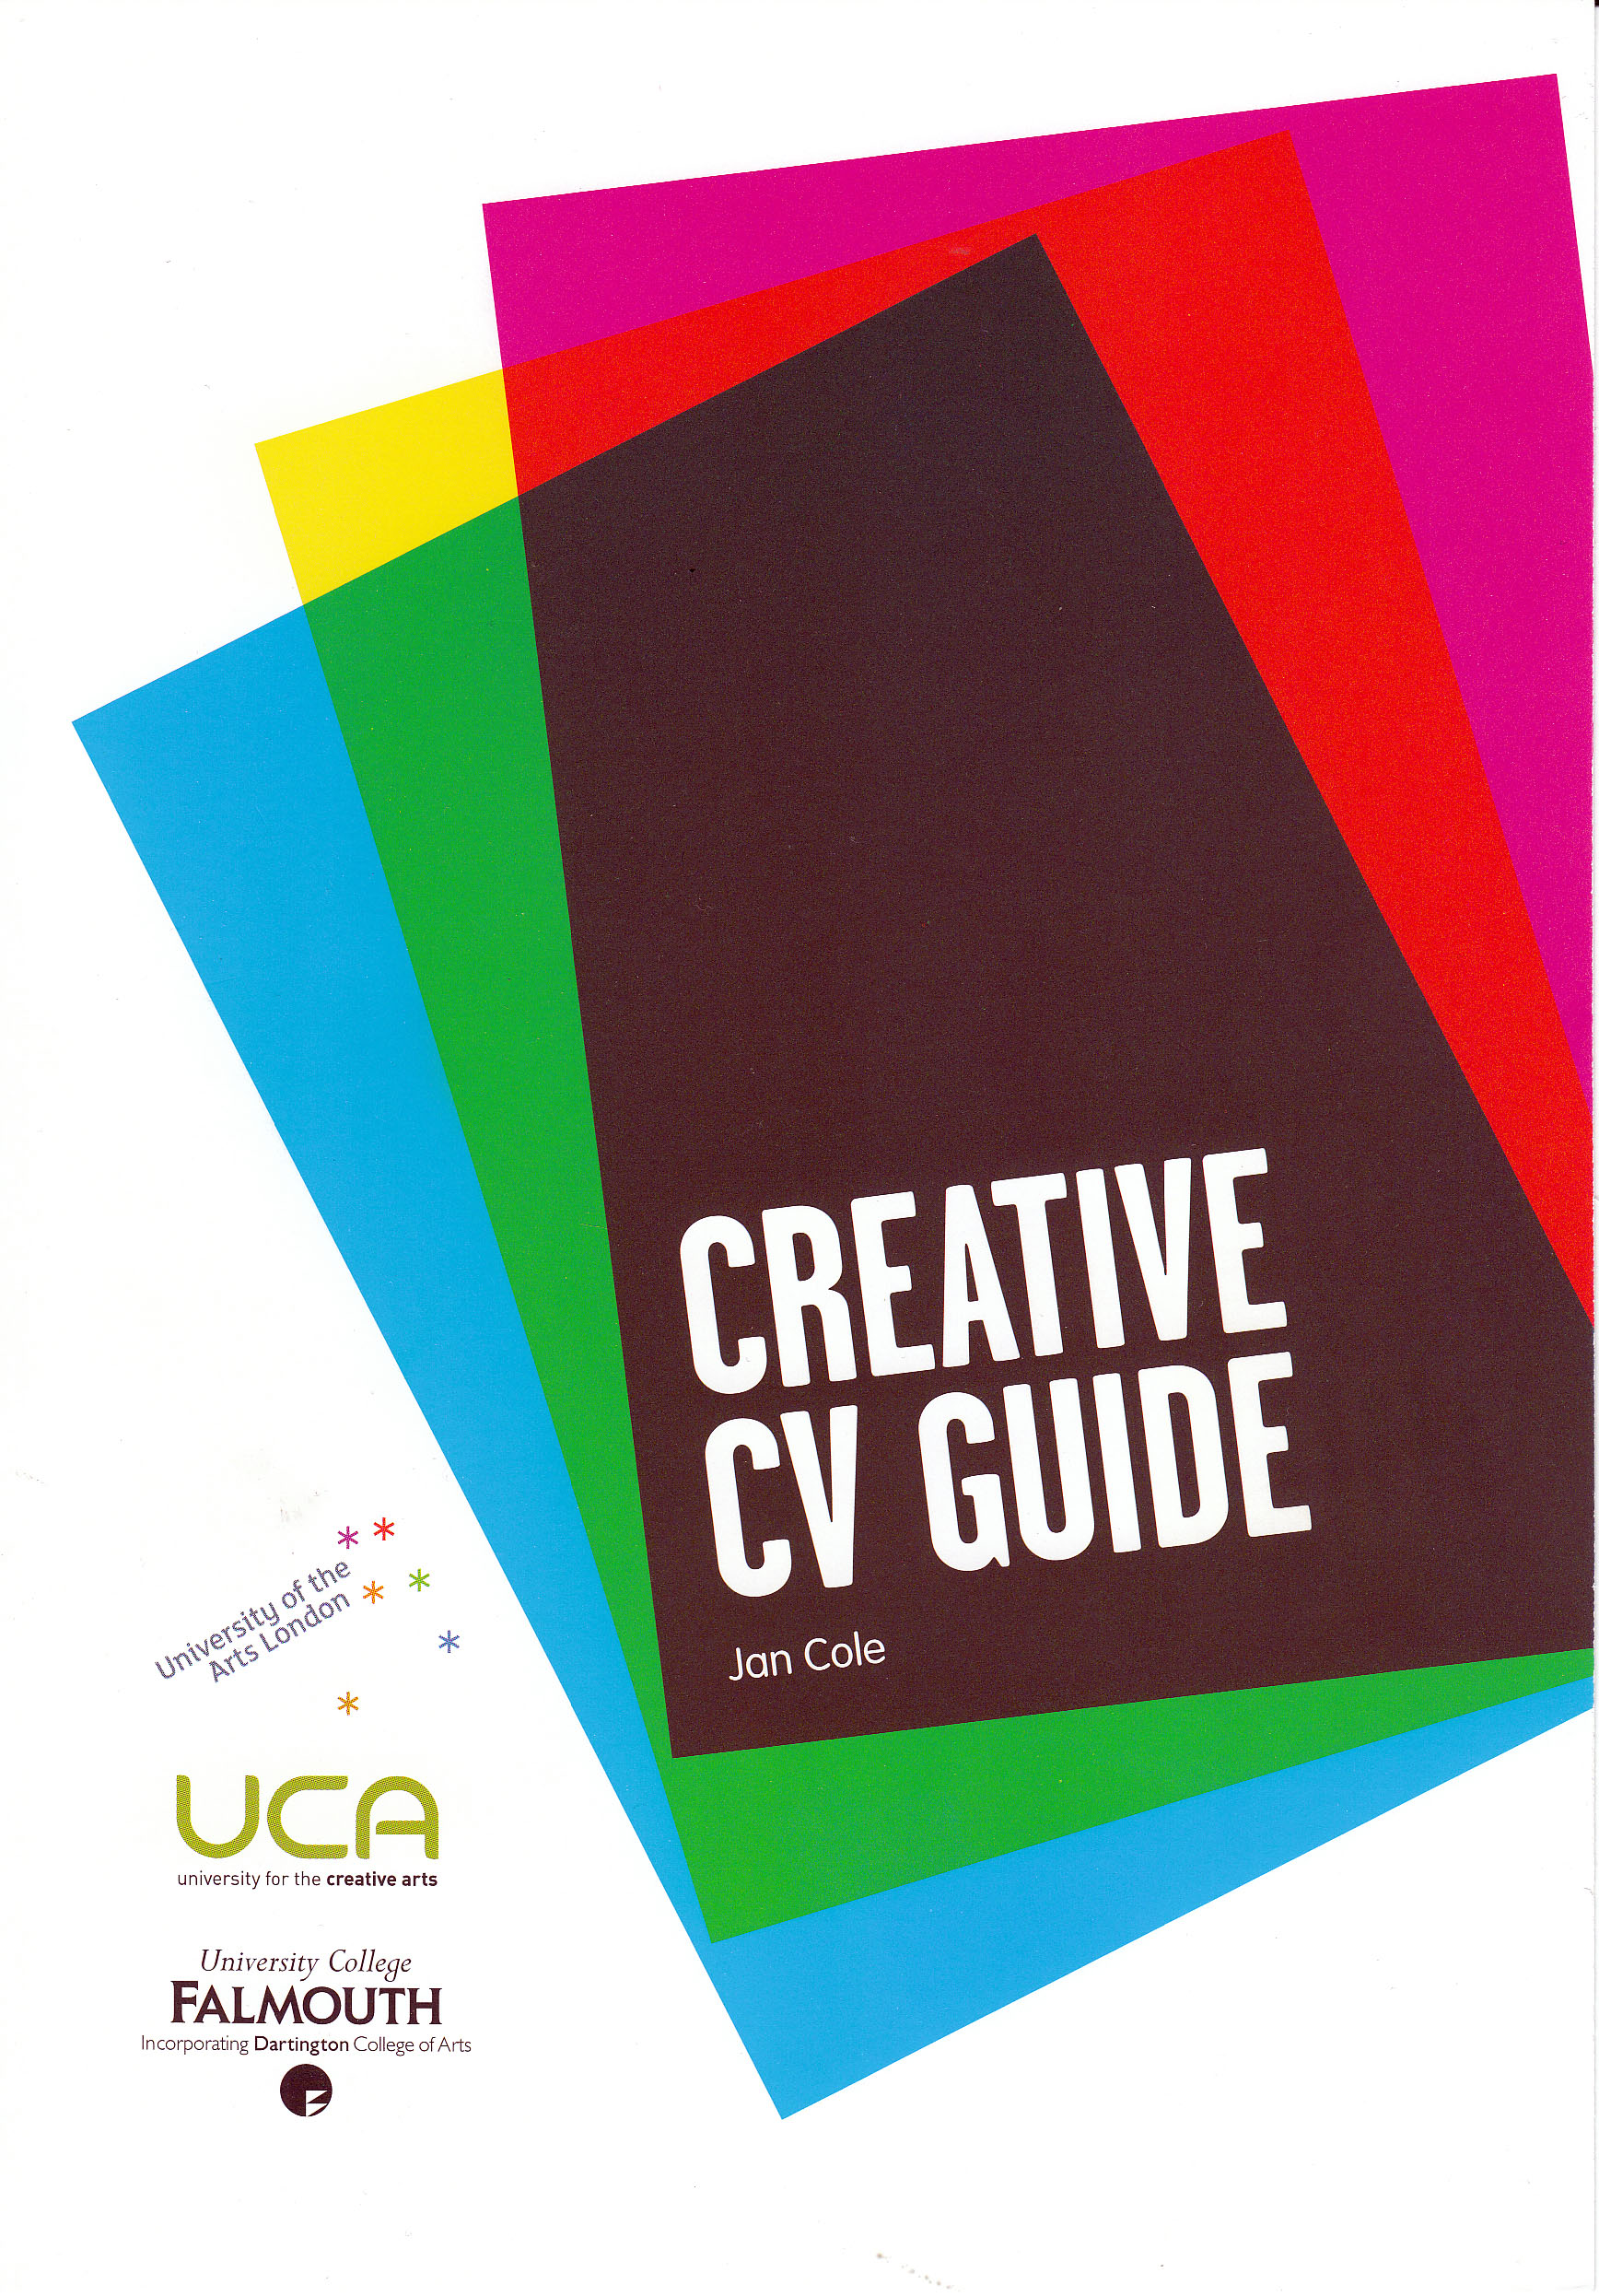 creative cv guide launches in british library